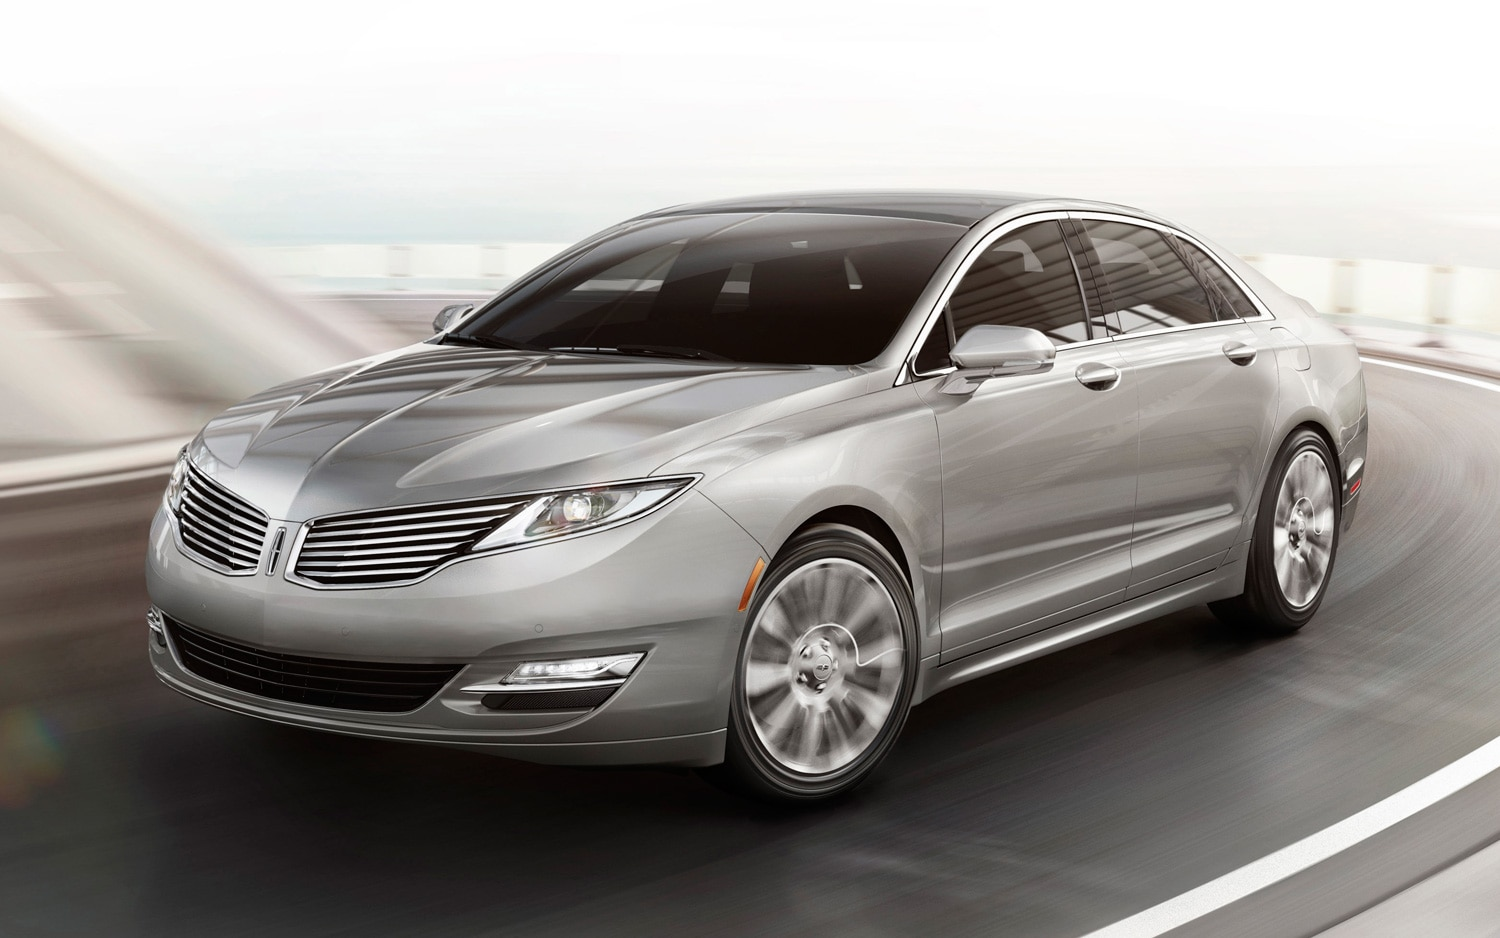 new york 2012 2013 lincoln mkz starts the luxury brand 39 s reinvention. Black Bedroom Furniture Sets. Home Design Ideas